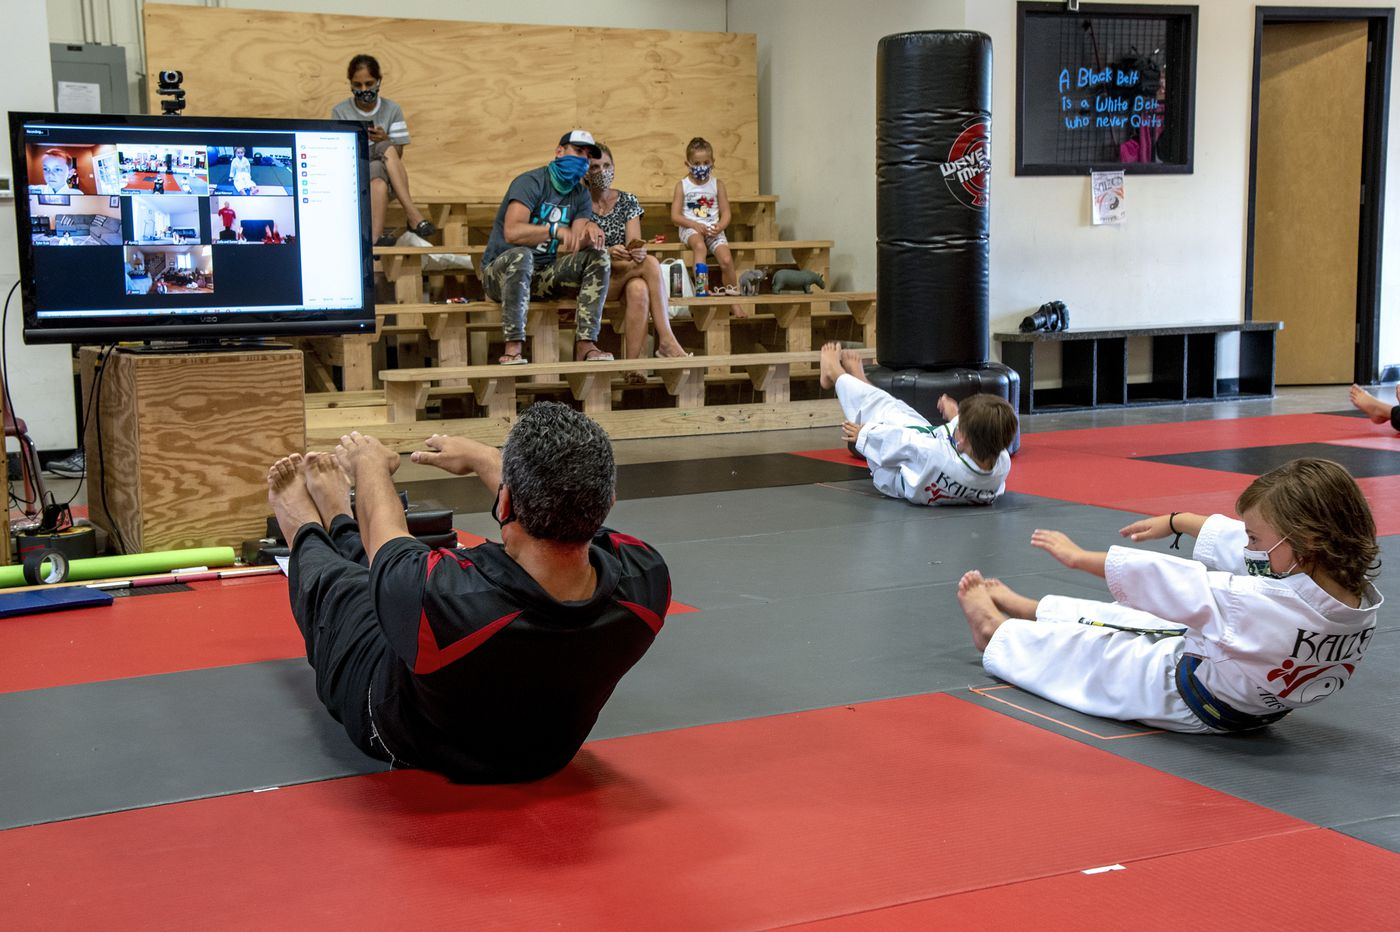 Yoga studios and martial arts gyms reopen in New Jersey with mixed confidence